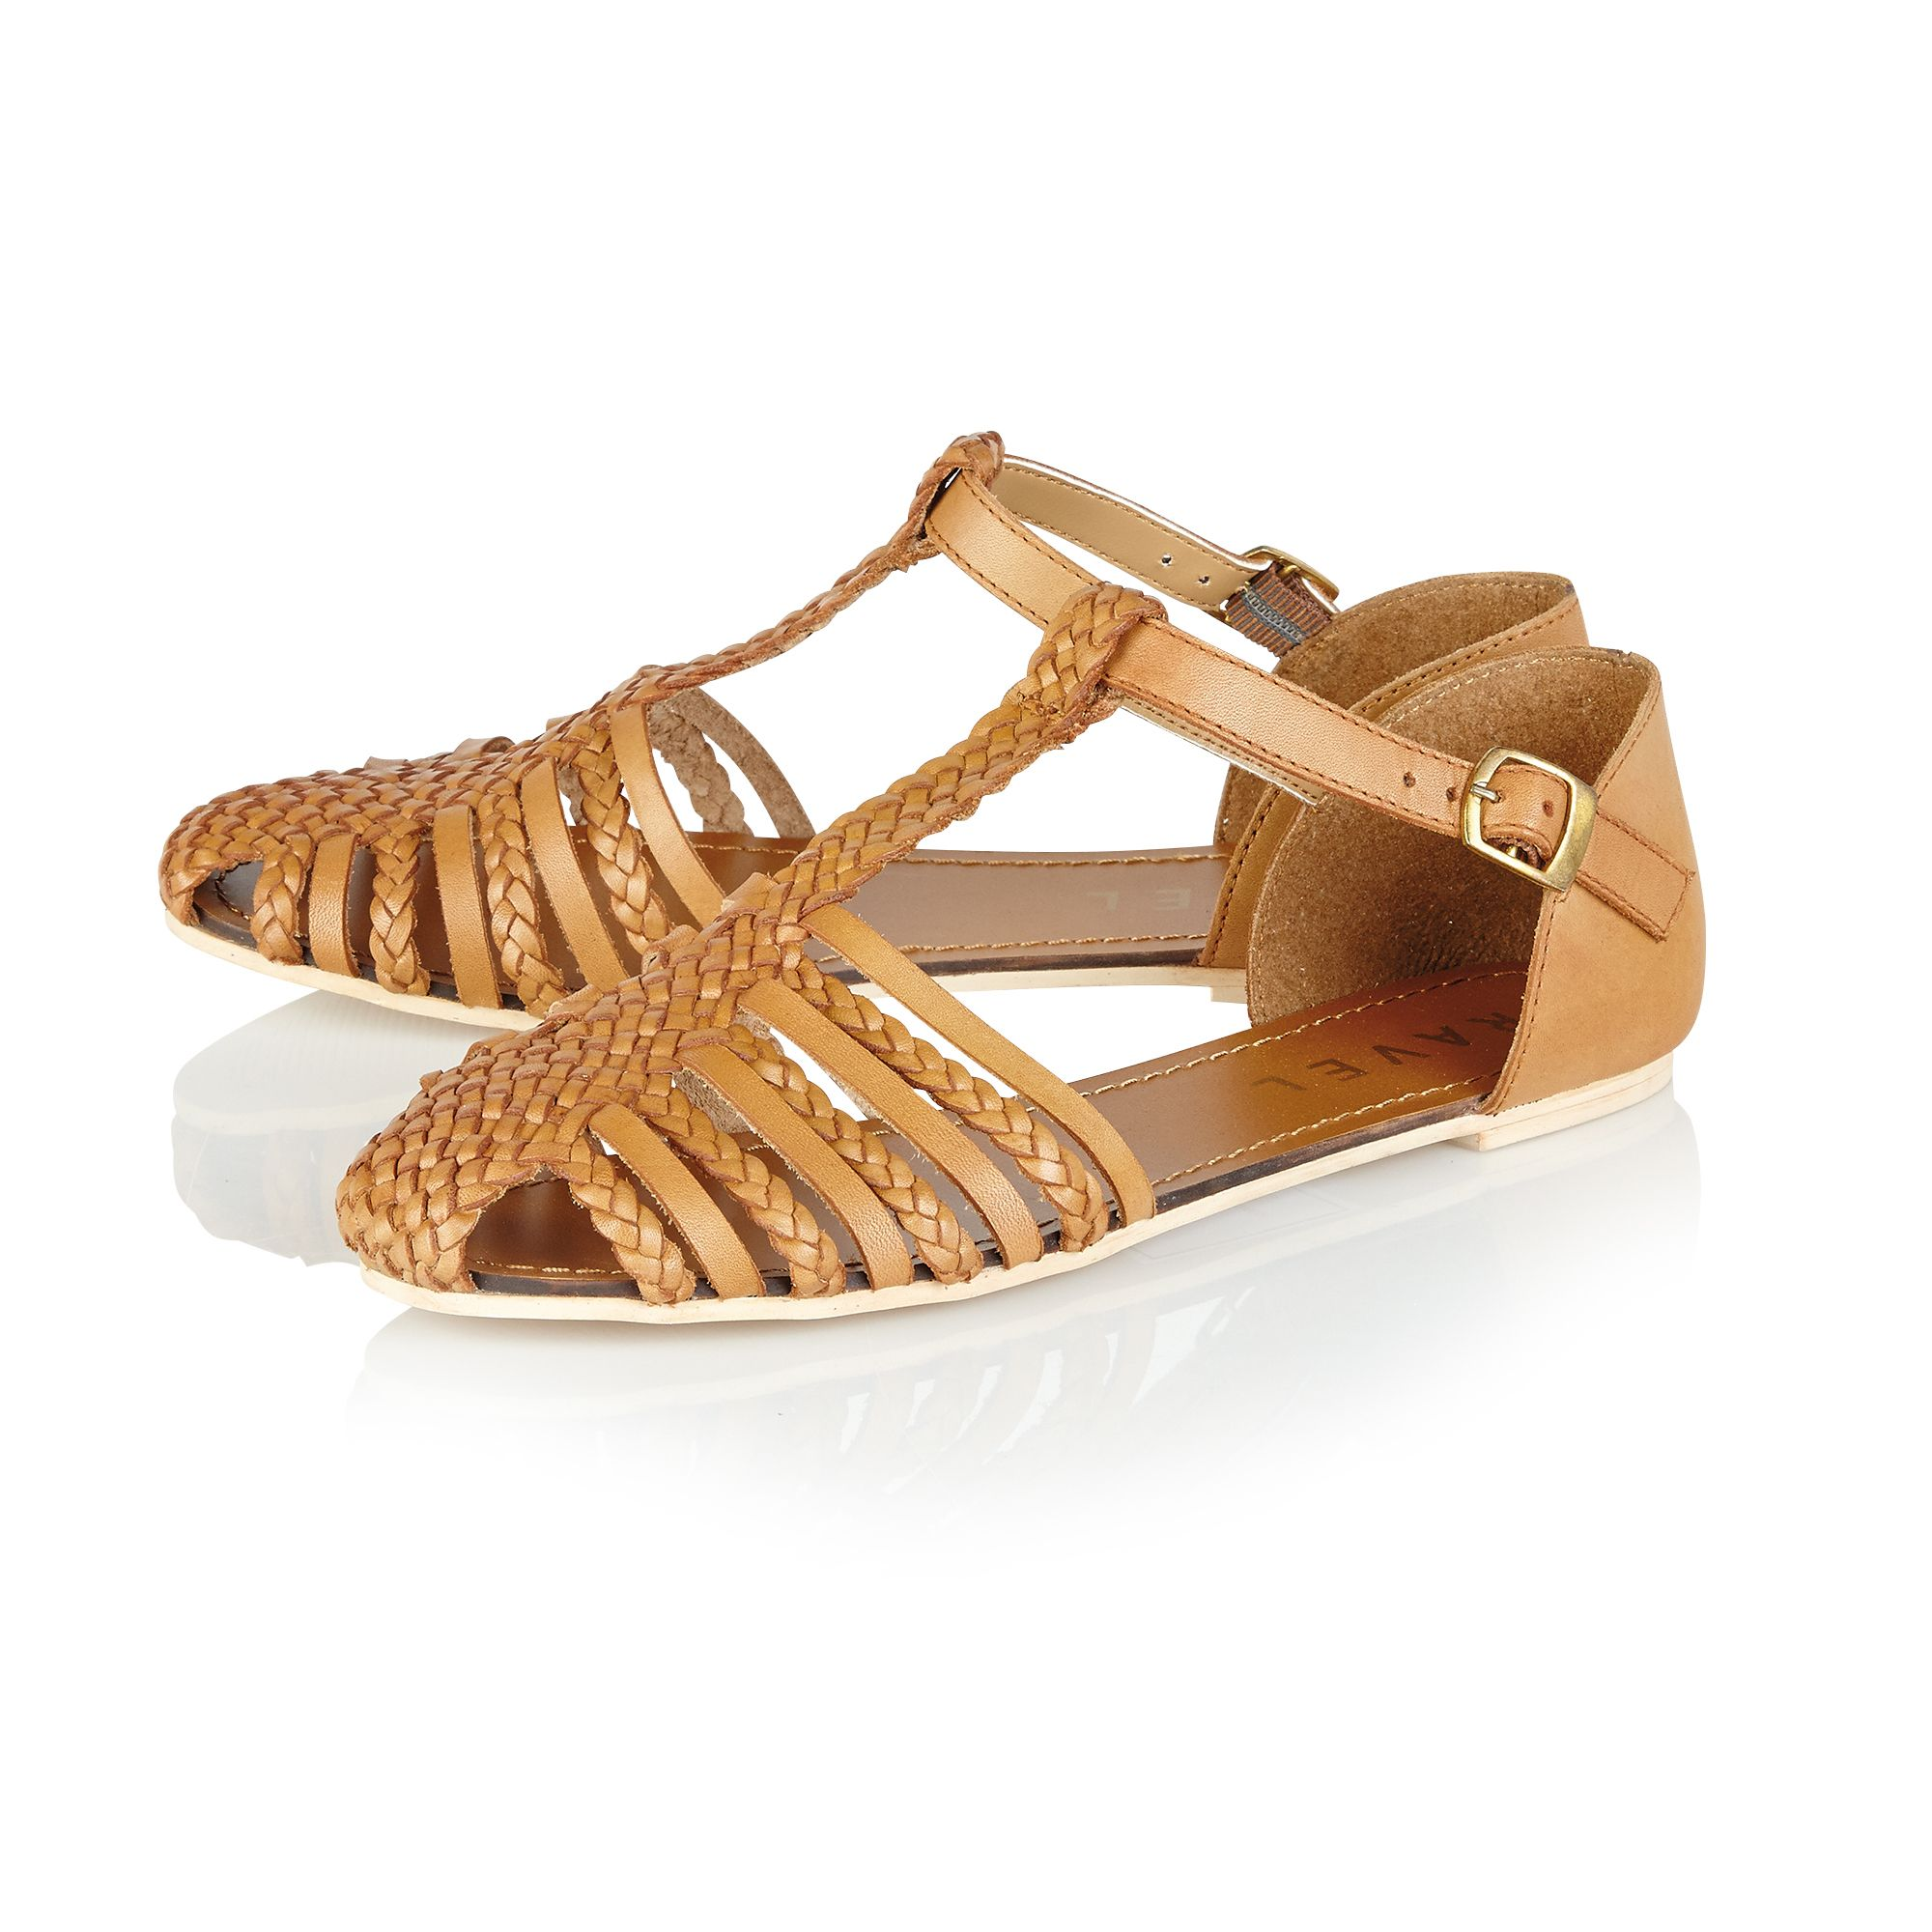 Primrose leather round toe buckle sandals